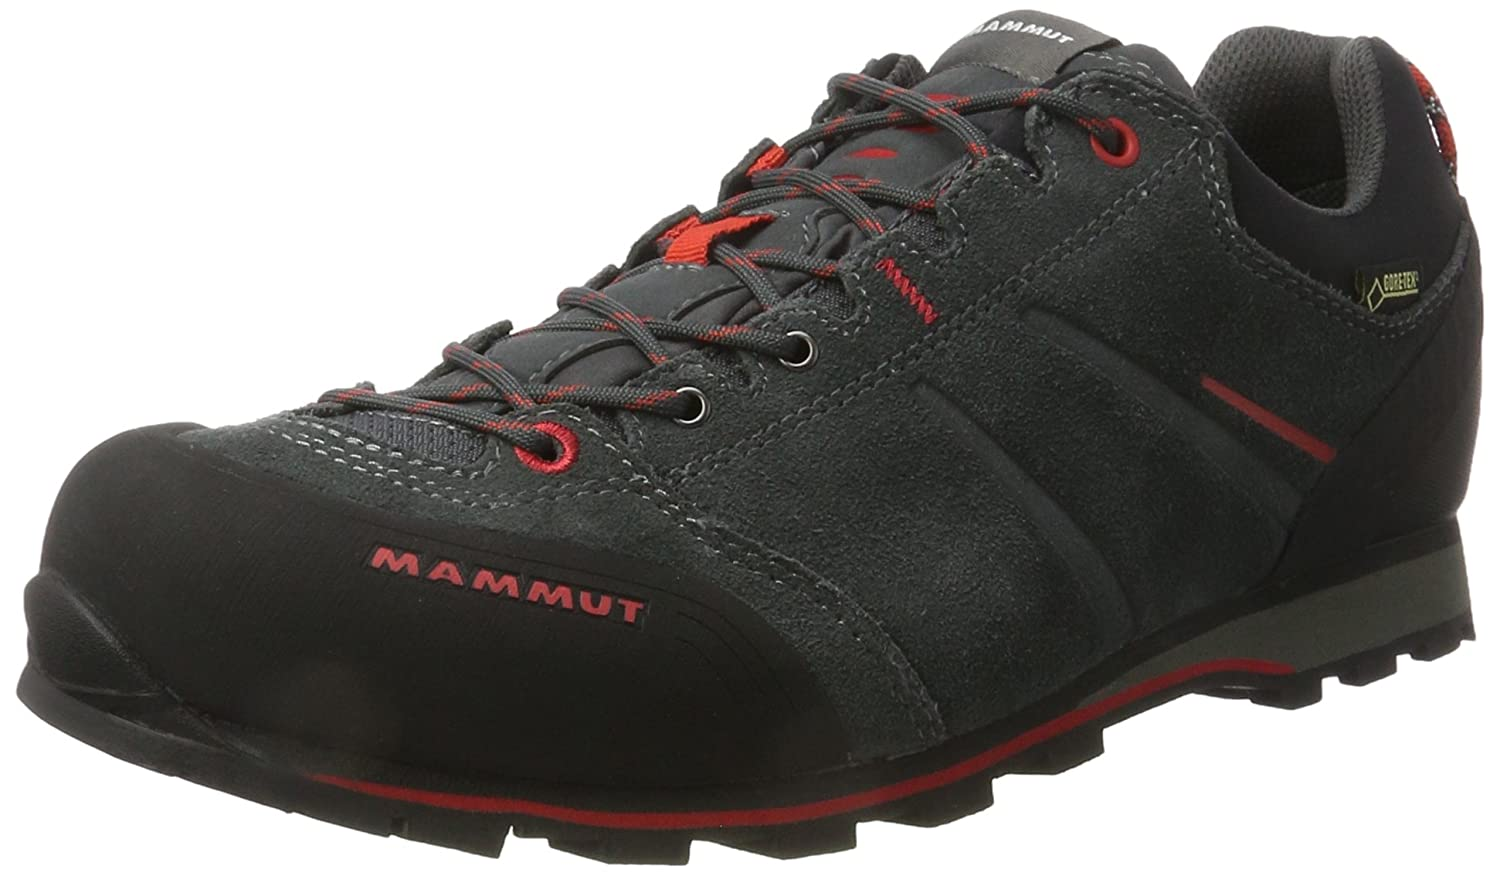 Amazon.com | Mammut Mens Wall Guide Low Approach Walking Shoes, Dark Grey, US11.5 | Hiking Shoes